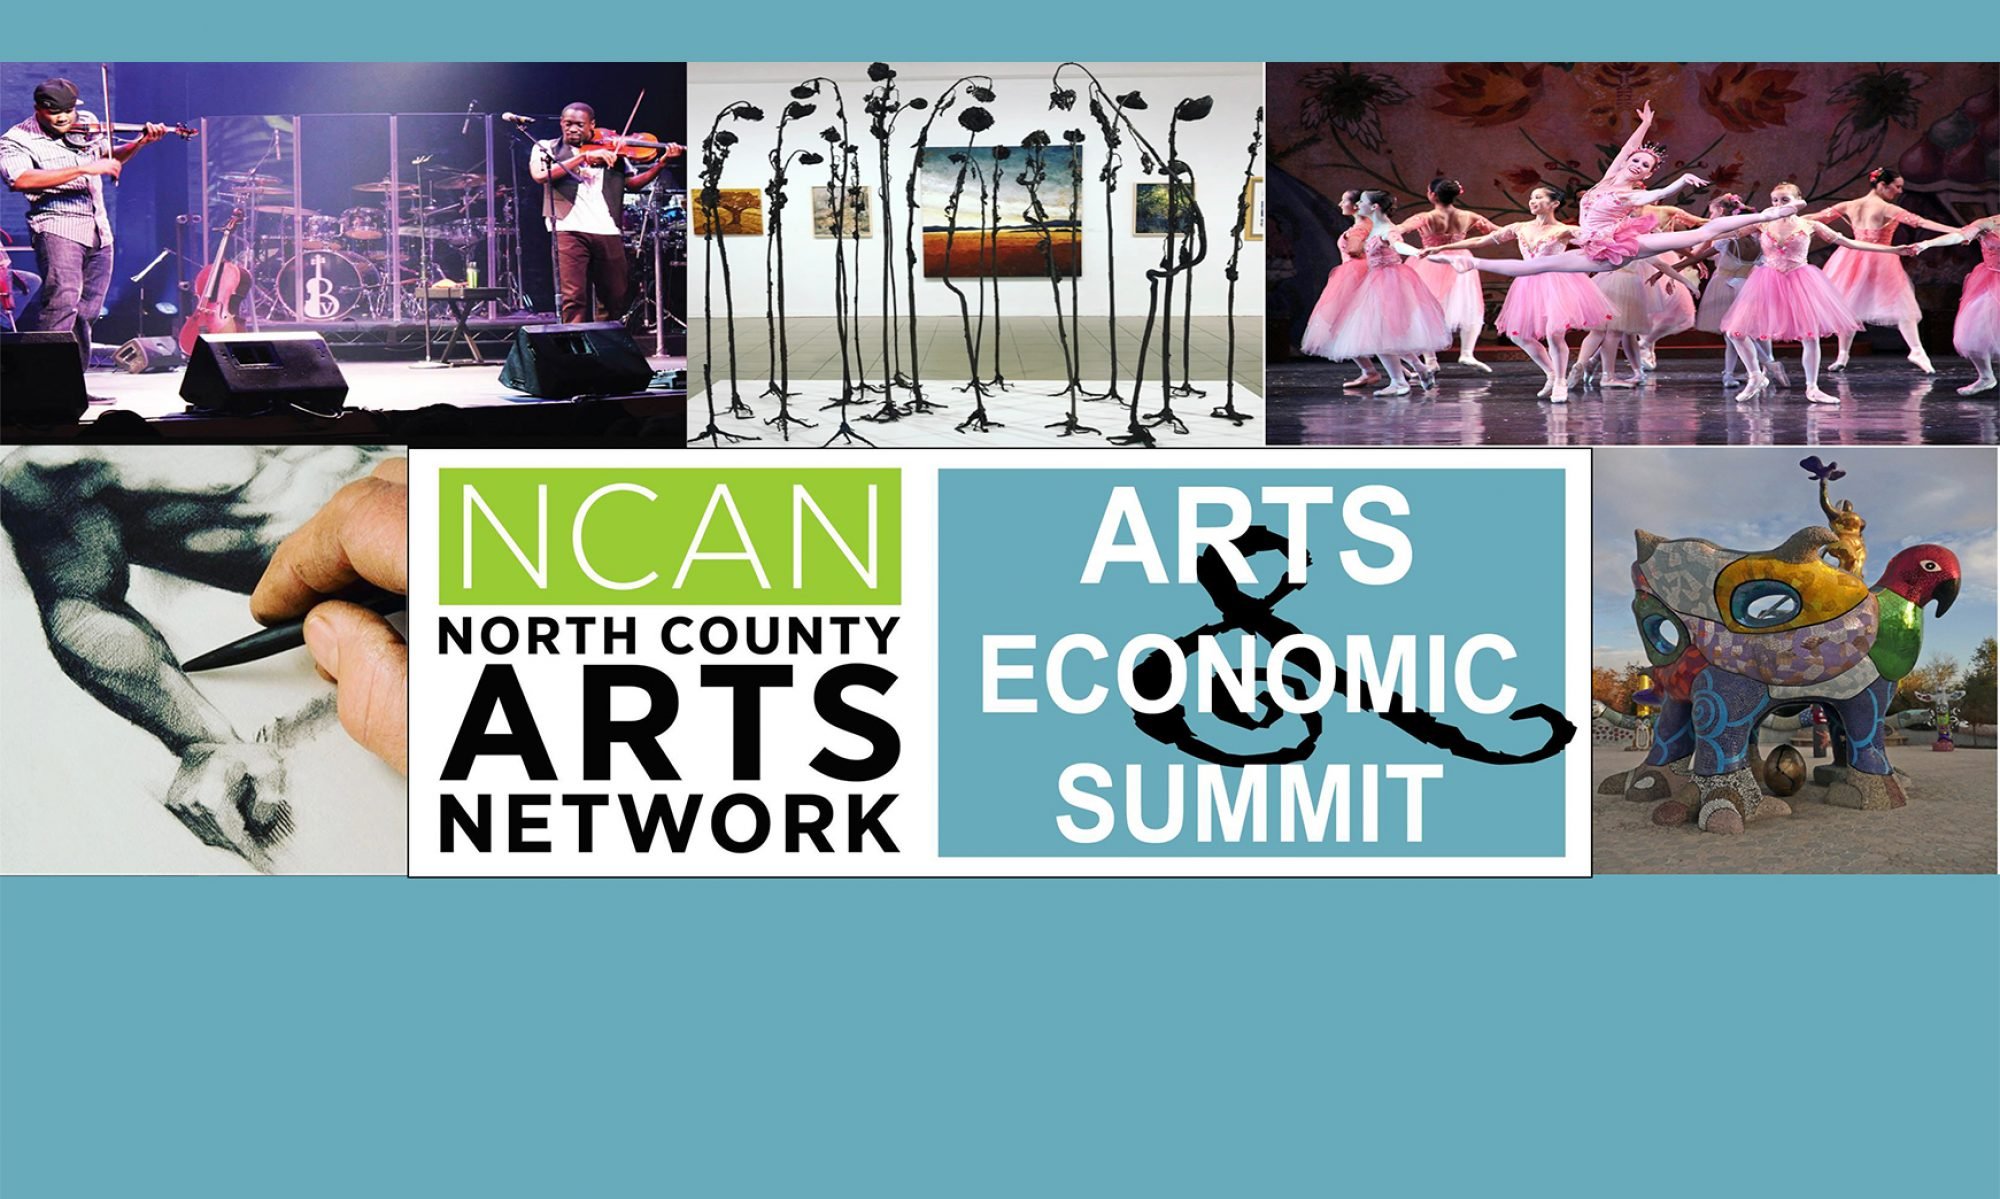 North County Arts Network